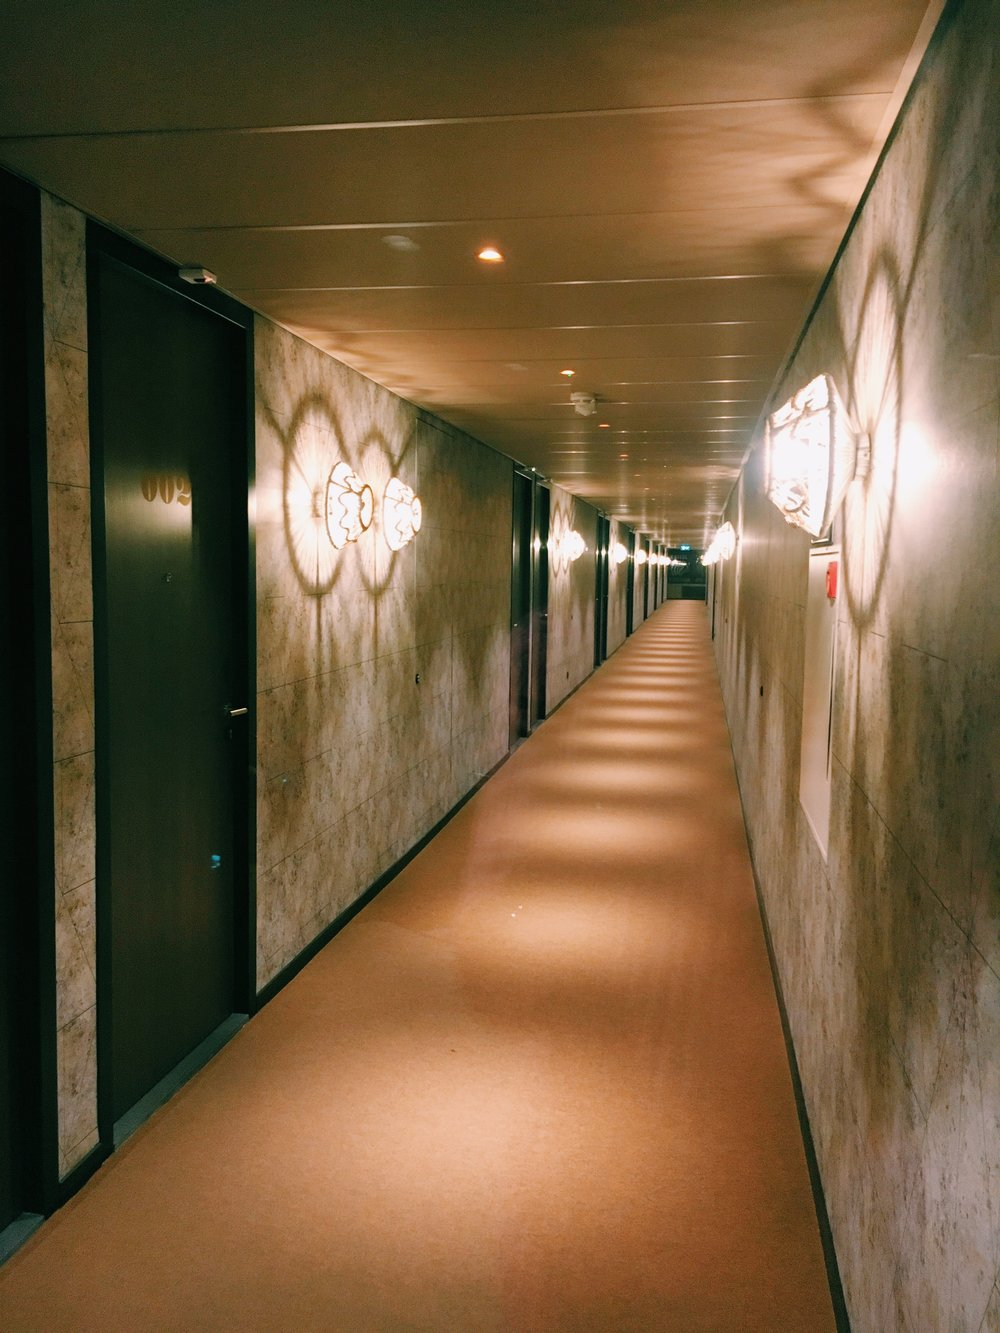 Even the lighting down the hallway to your room has been carefully matched to the design